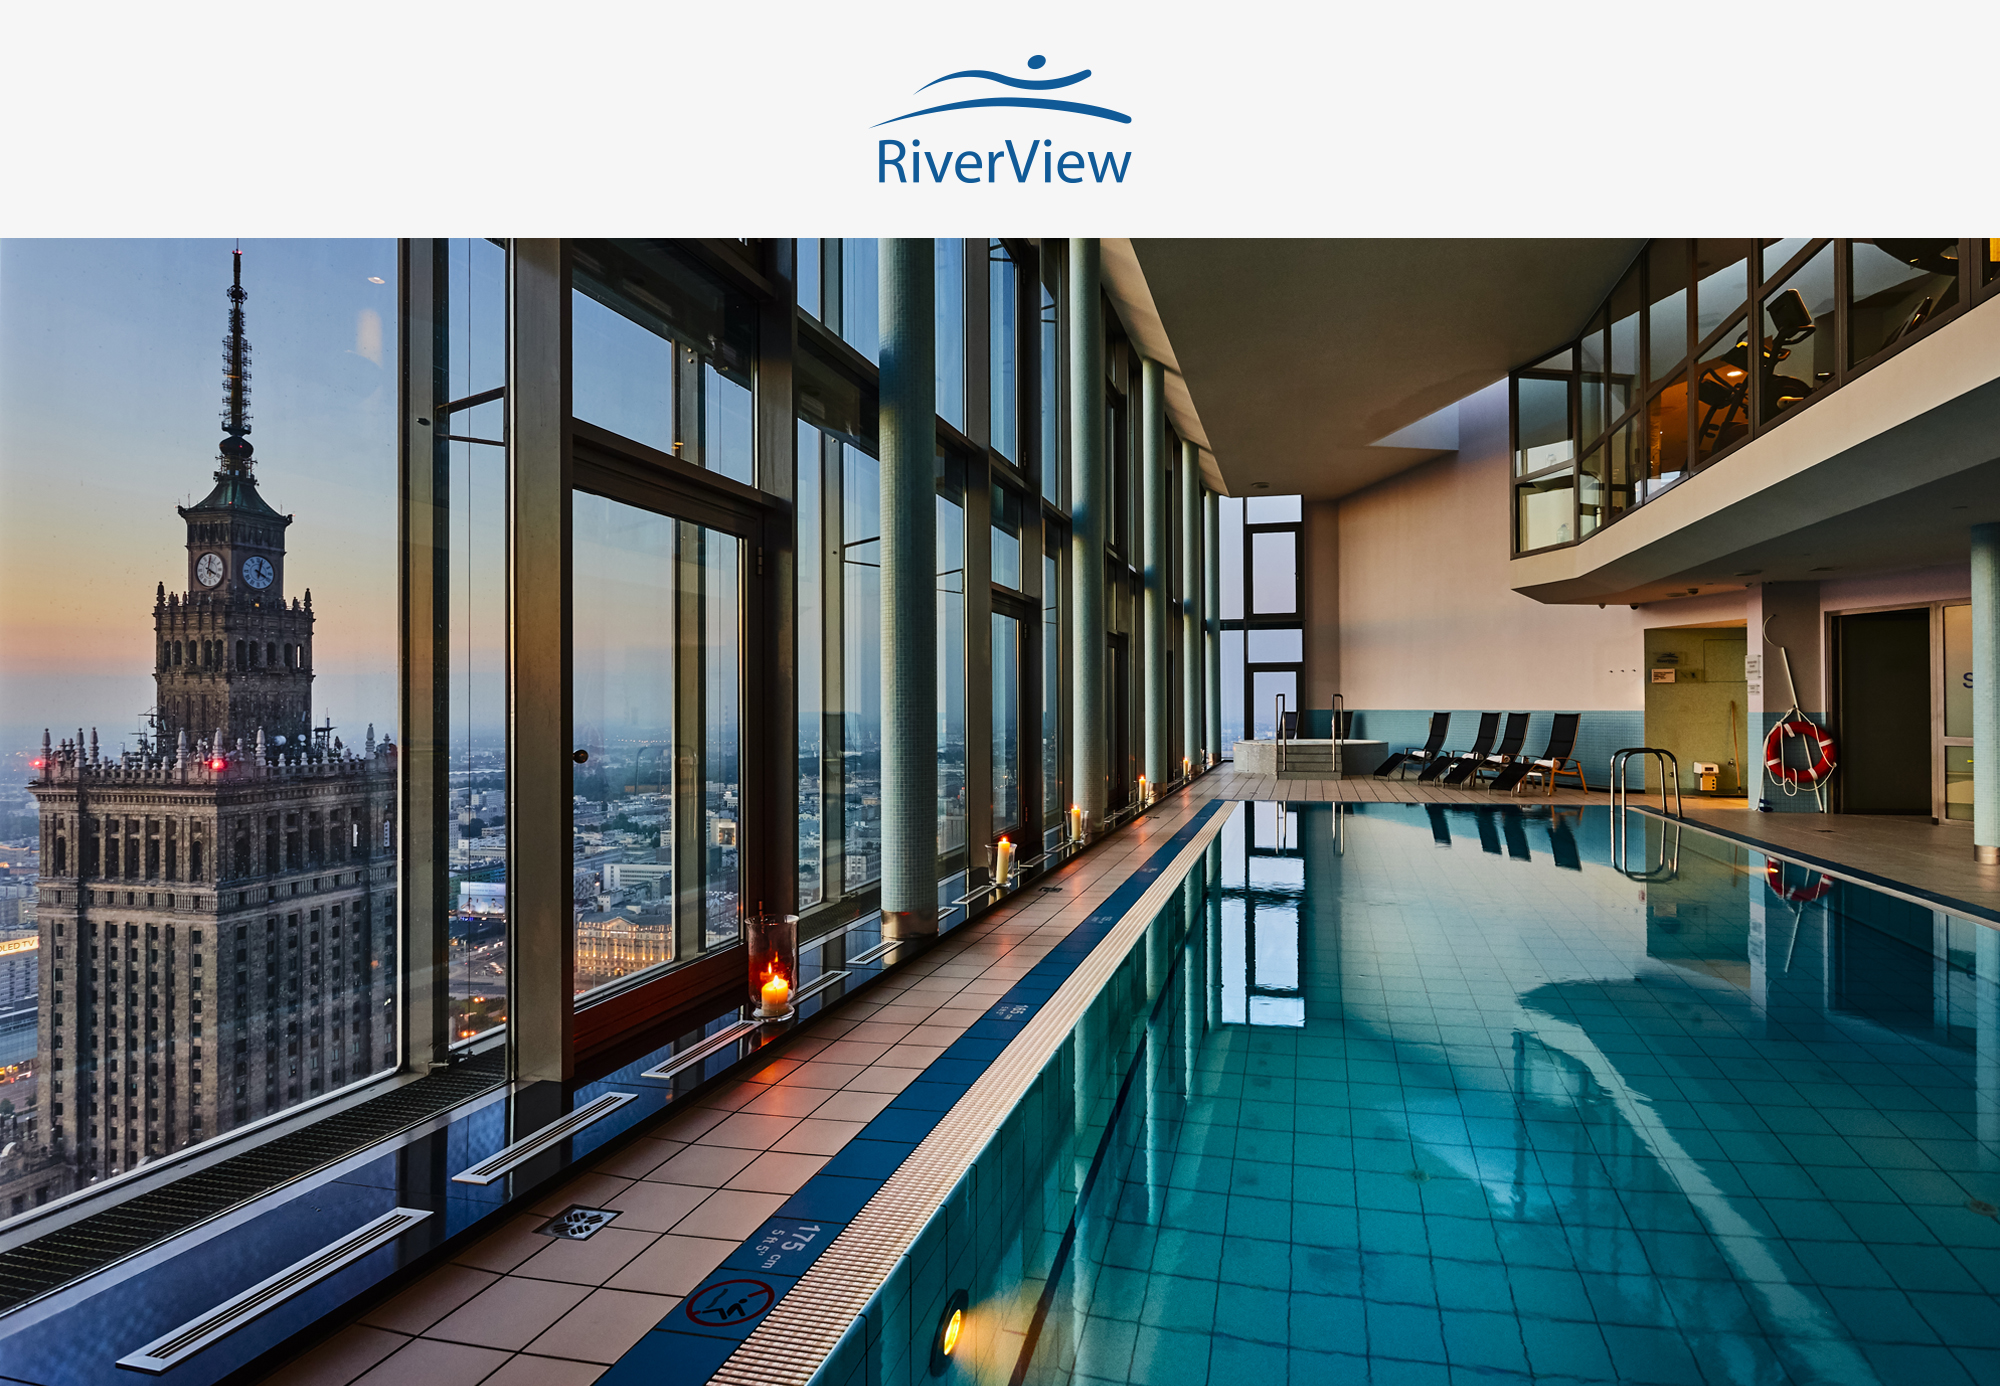 Relaxation day at the RiverView Wellness Centre (Monday-Thursday) one person